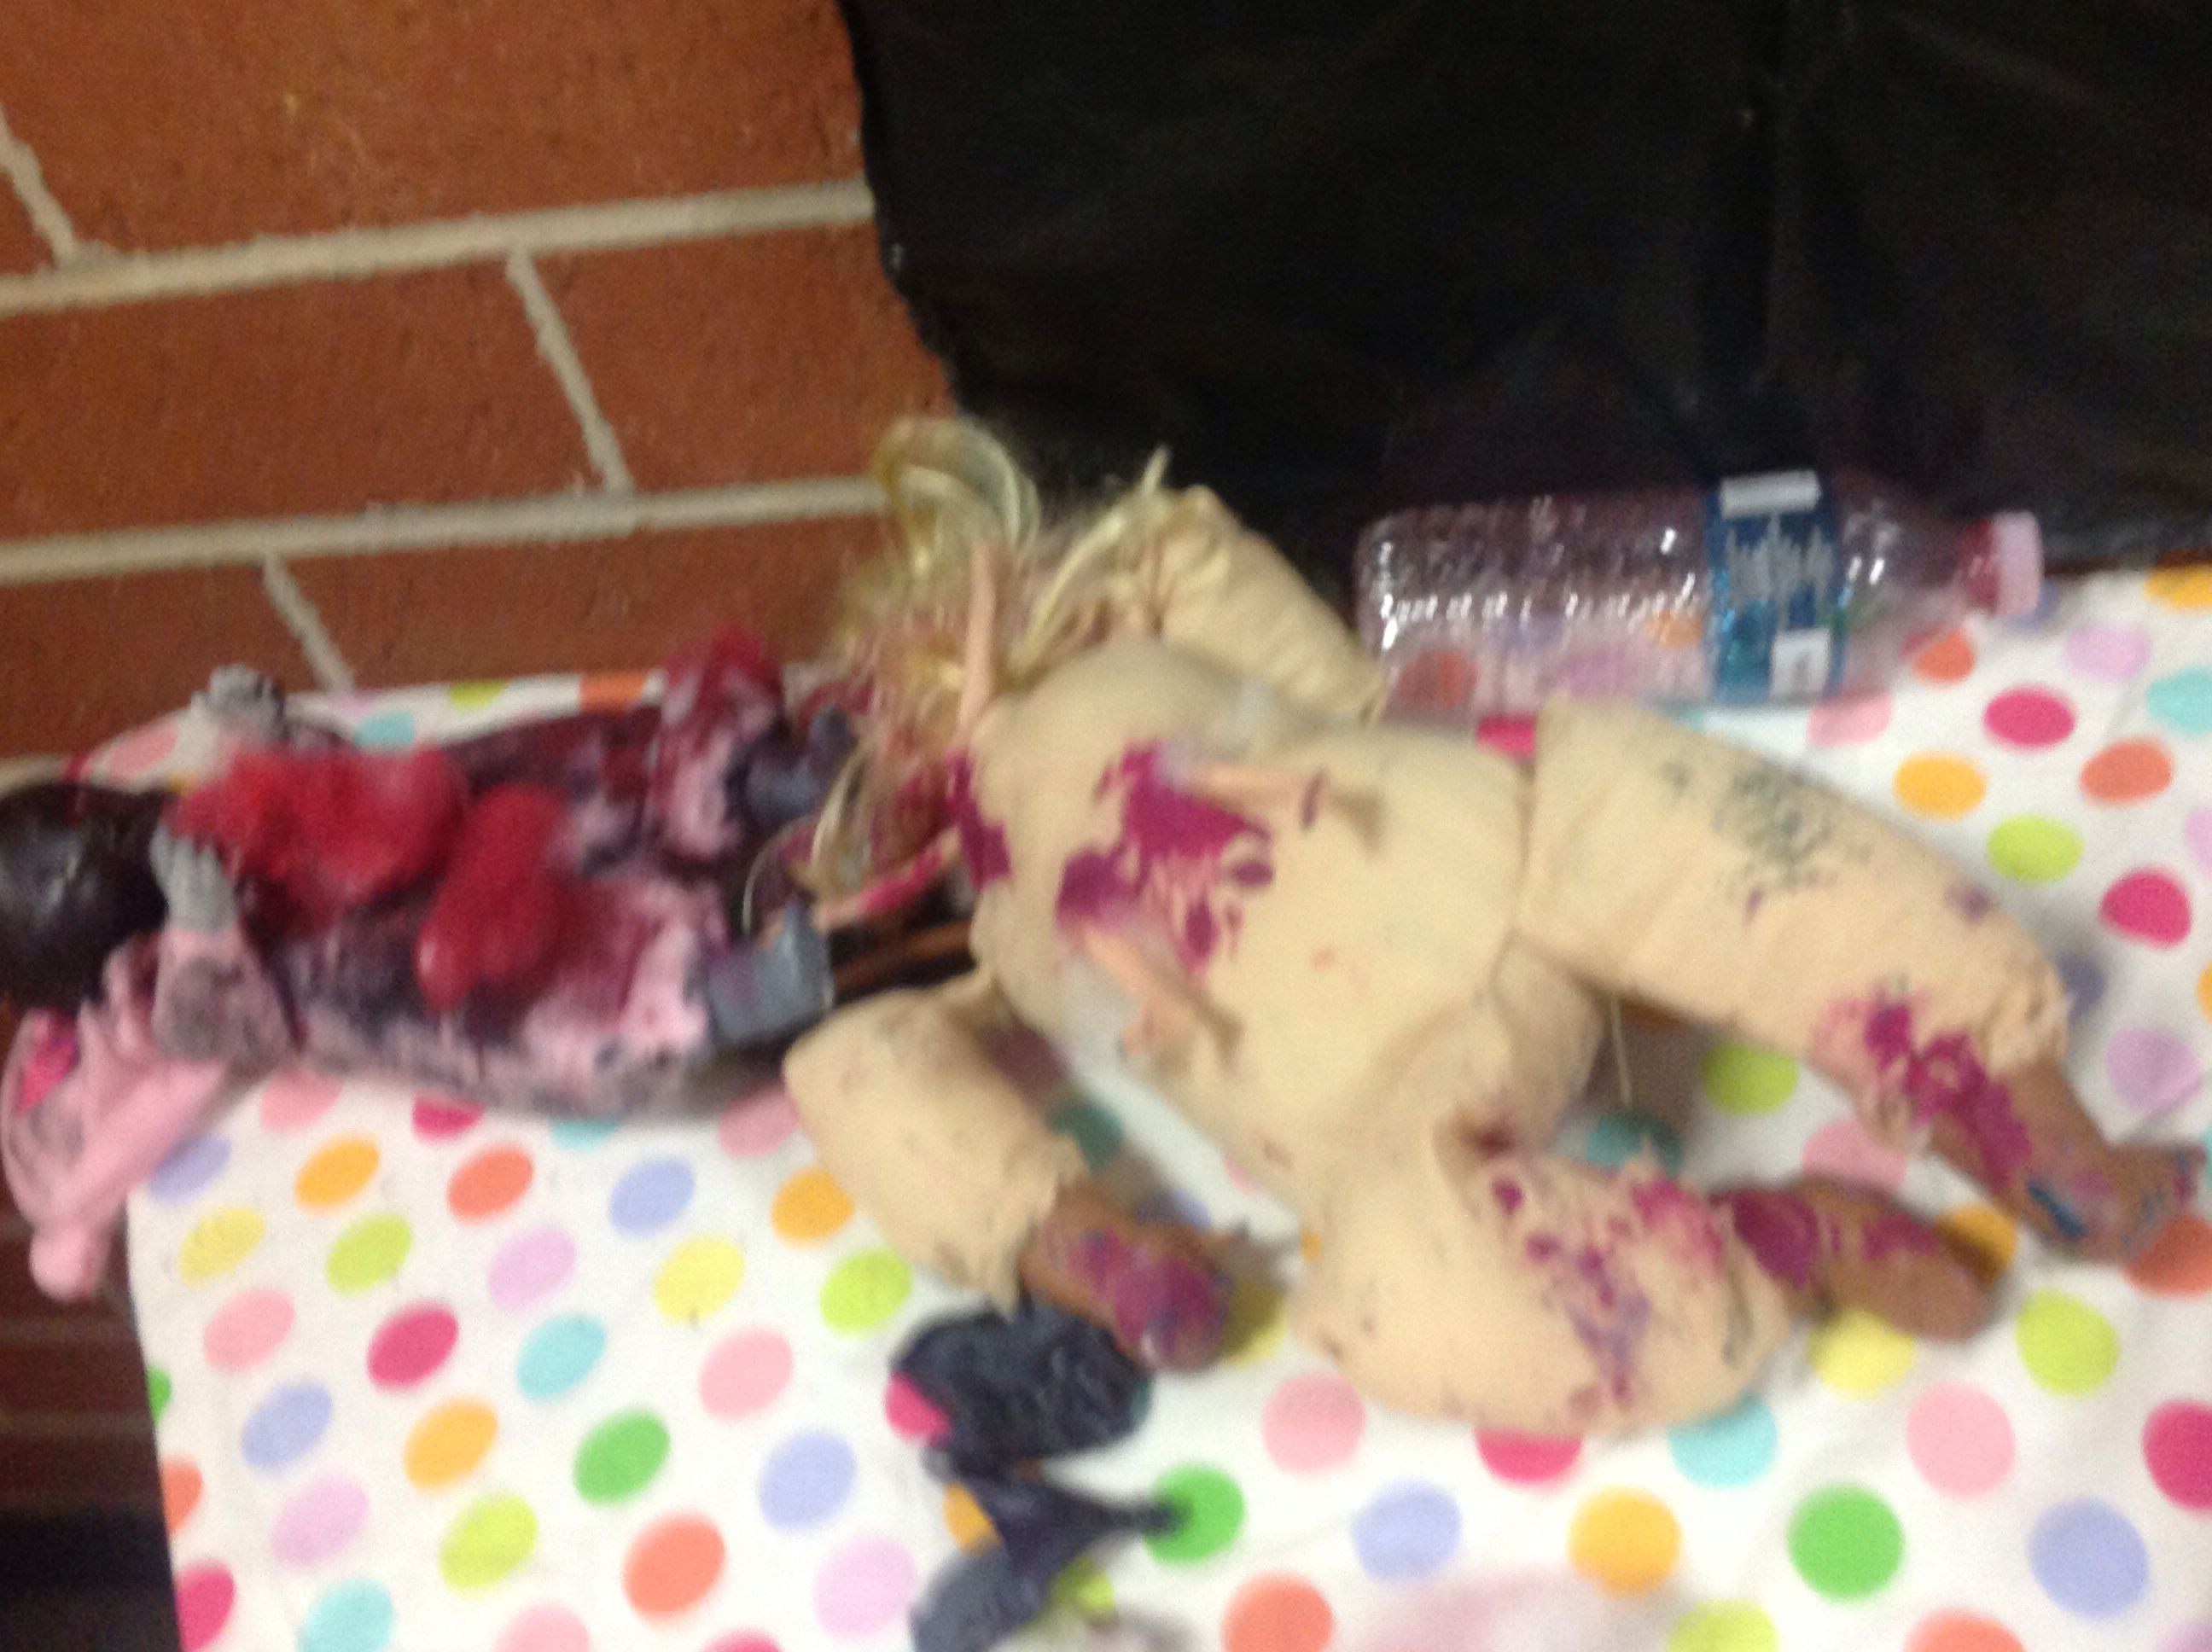 Defaced Dolls in Anne's Room